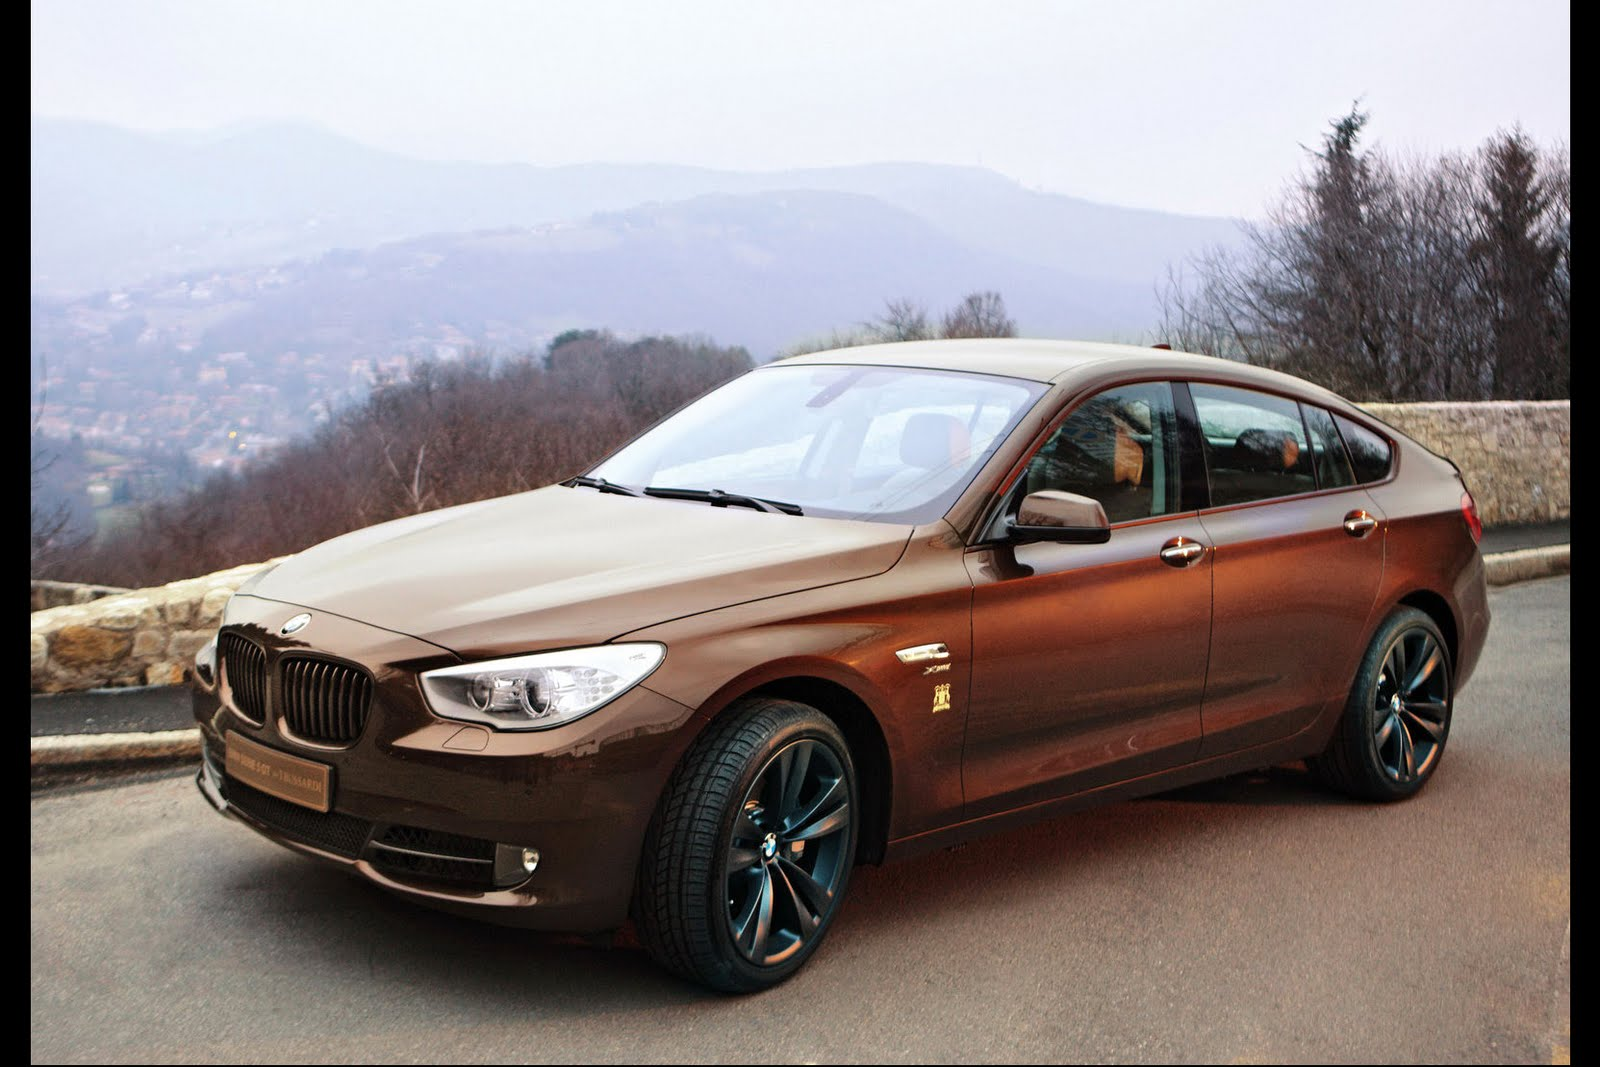 introducing bmw 5 series gt by trussardi autoevolution. Black Bedroom Furniture Sets. Home Design Ideas